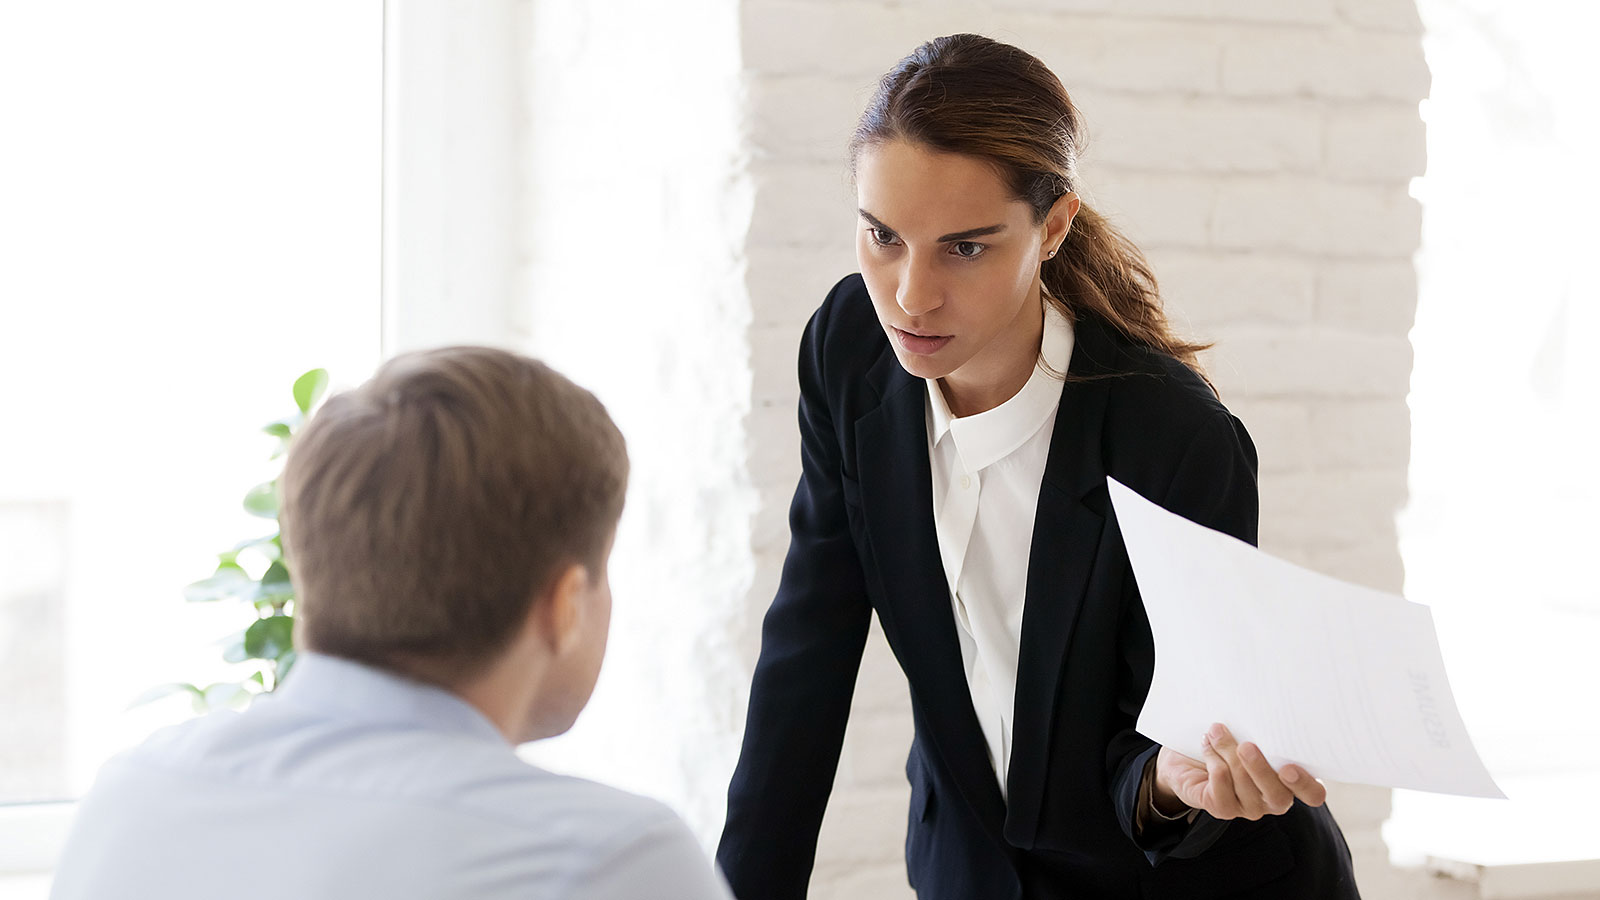 How to work with difficult people